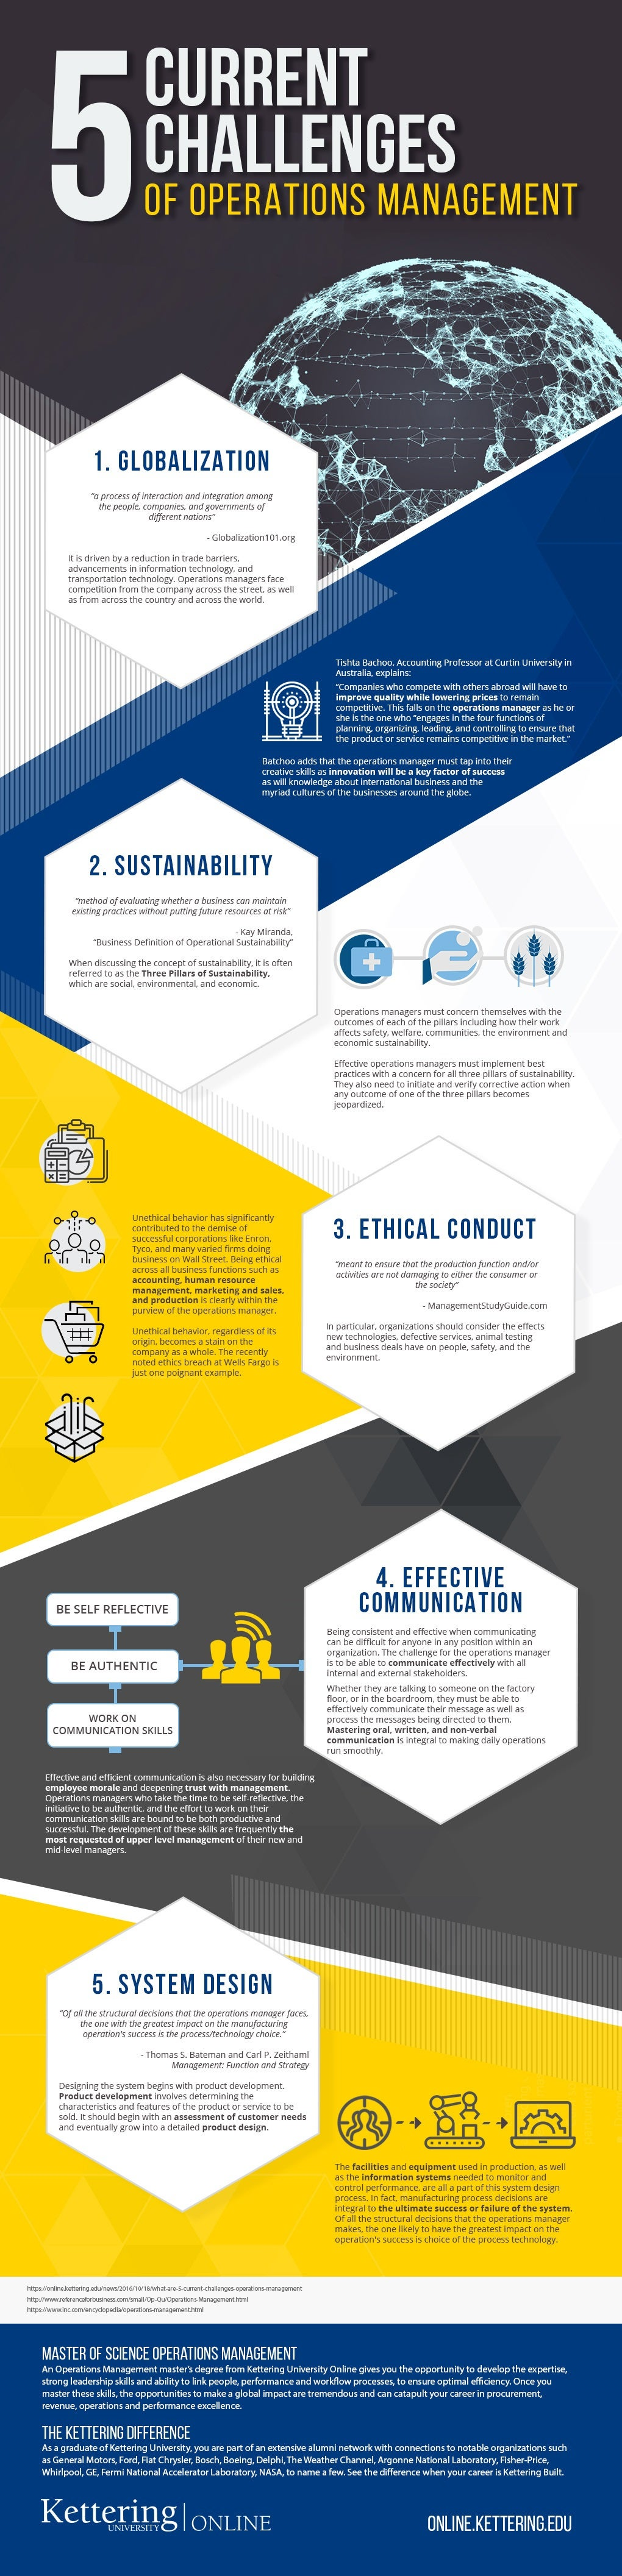 5 current challenges to operations management infographic